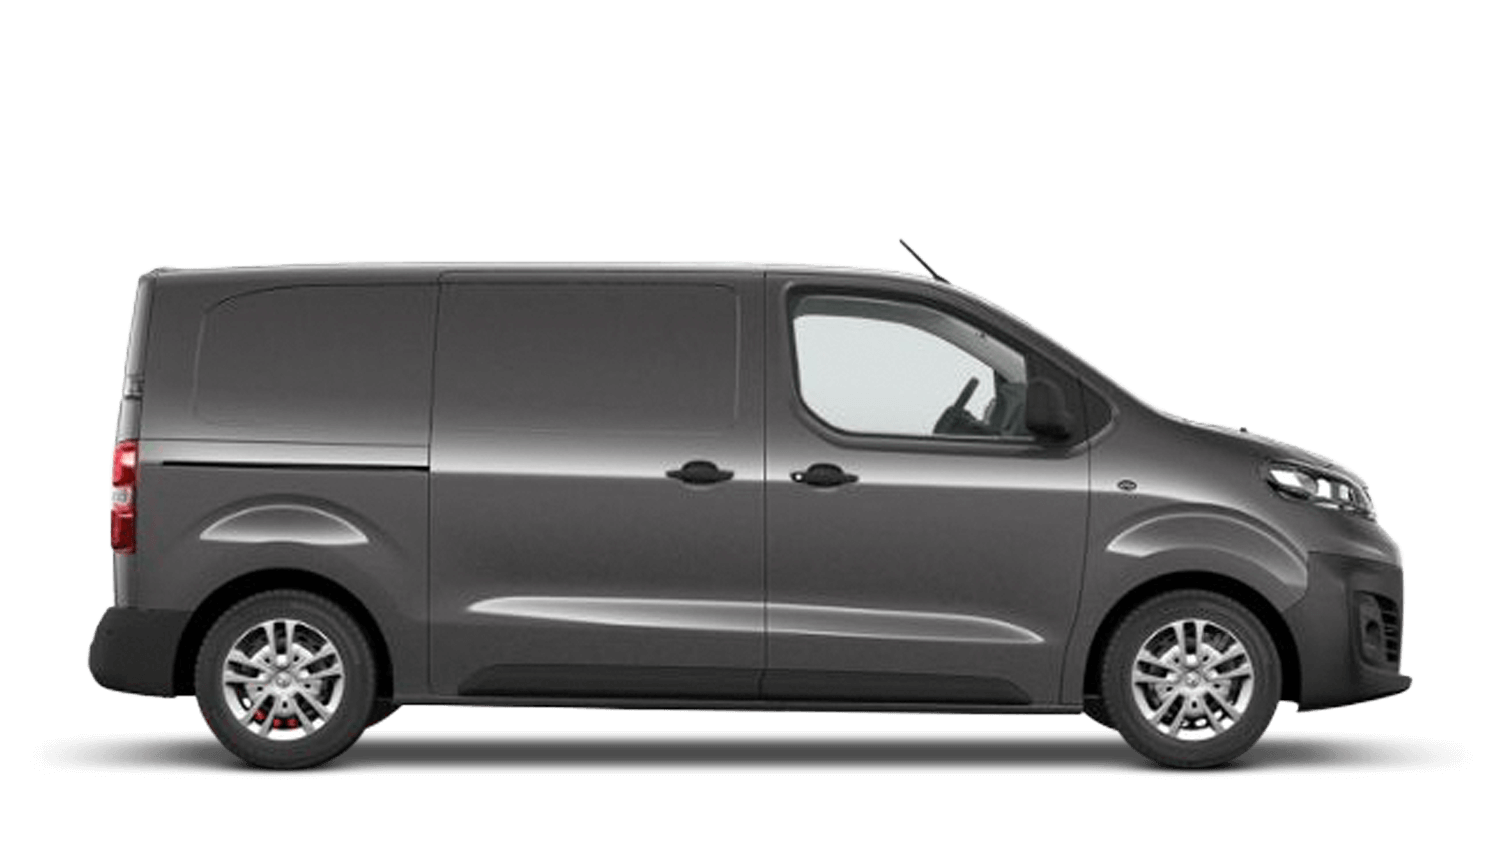 Moonstone Grey (Metallic) Vauxhall Vivaro E